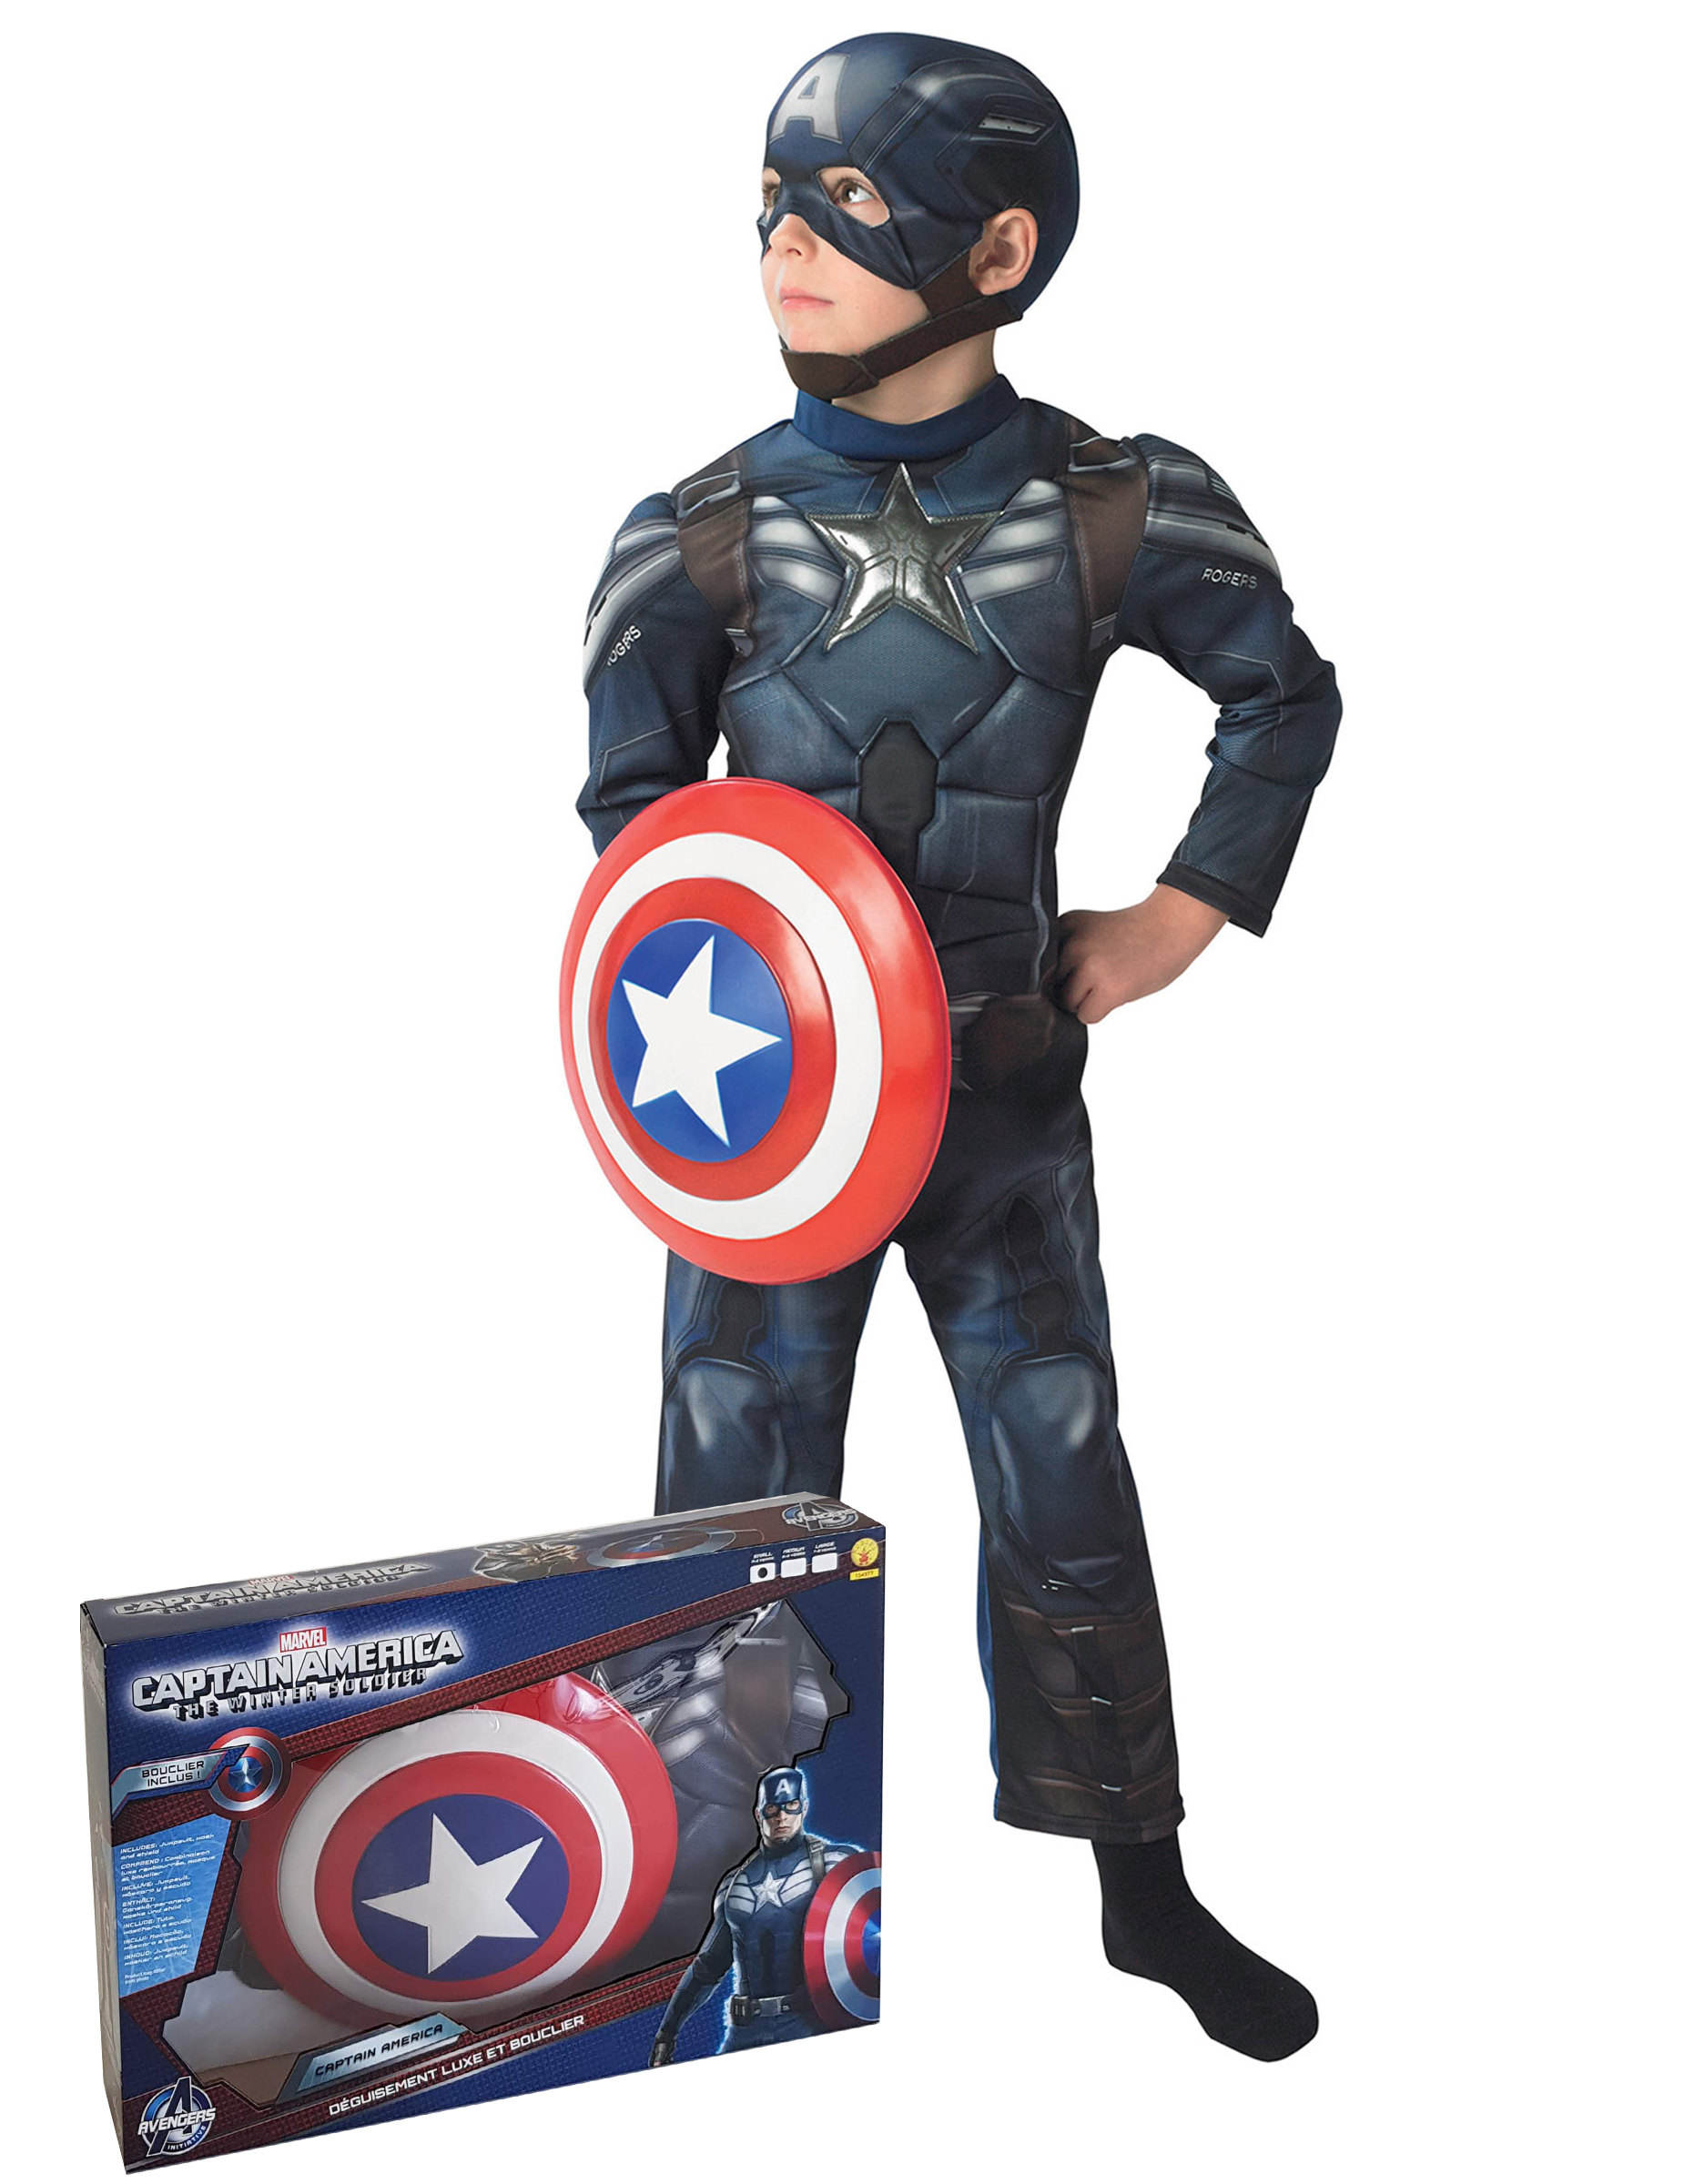 Captain America The Winter Soldier kostuum voor jongens